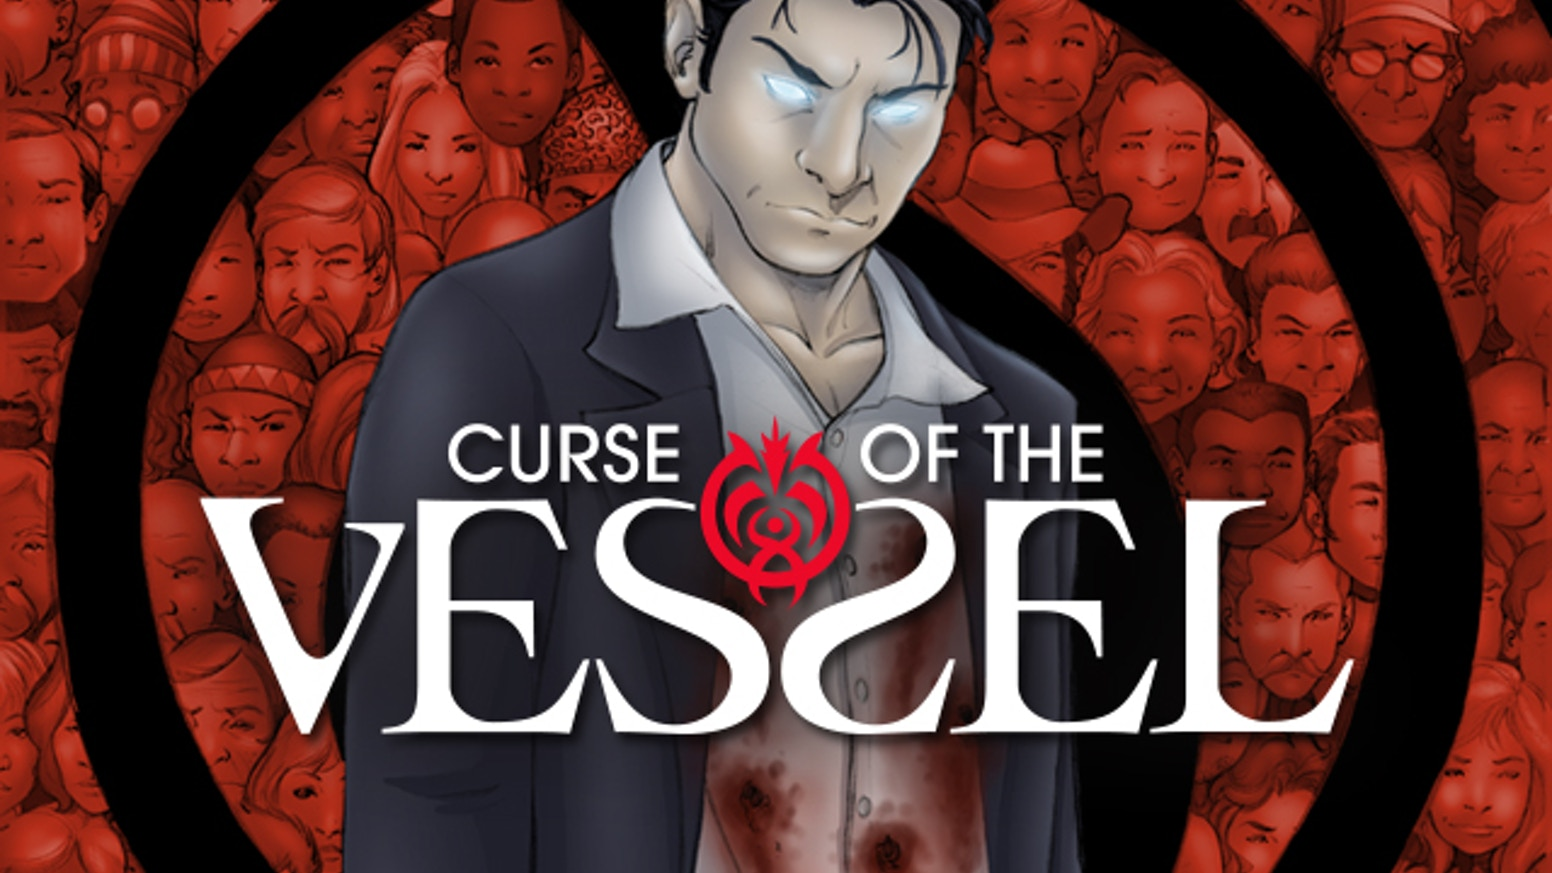 A brutal criminal, cursed to be a vessel for the dead, relentlessly hunts the man who cursed him. Part one of a four issue series.